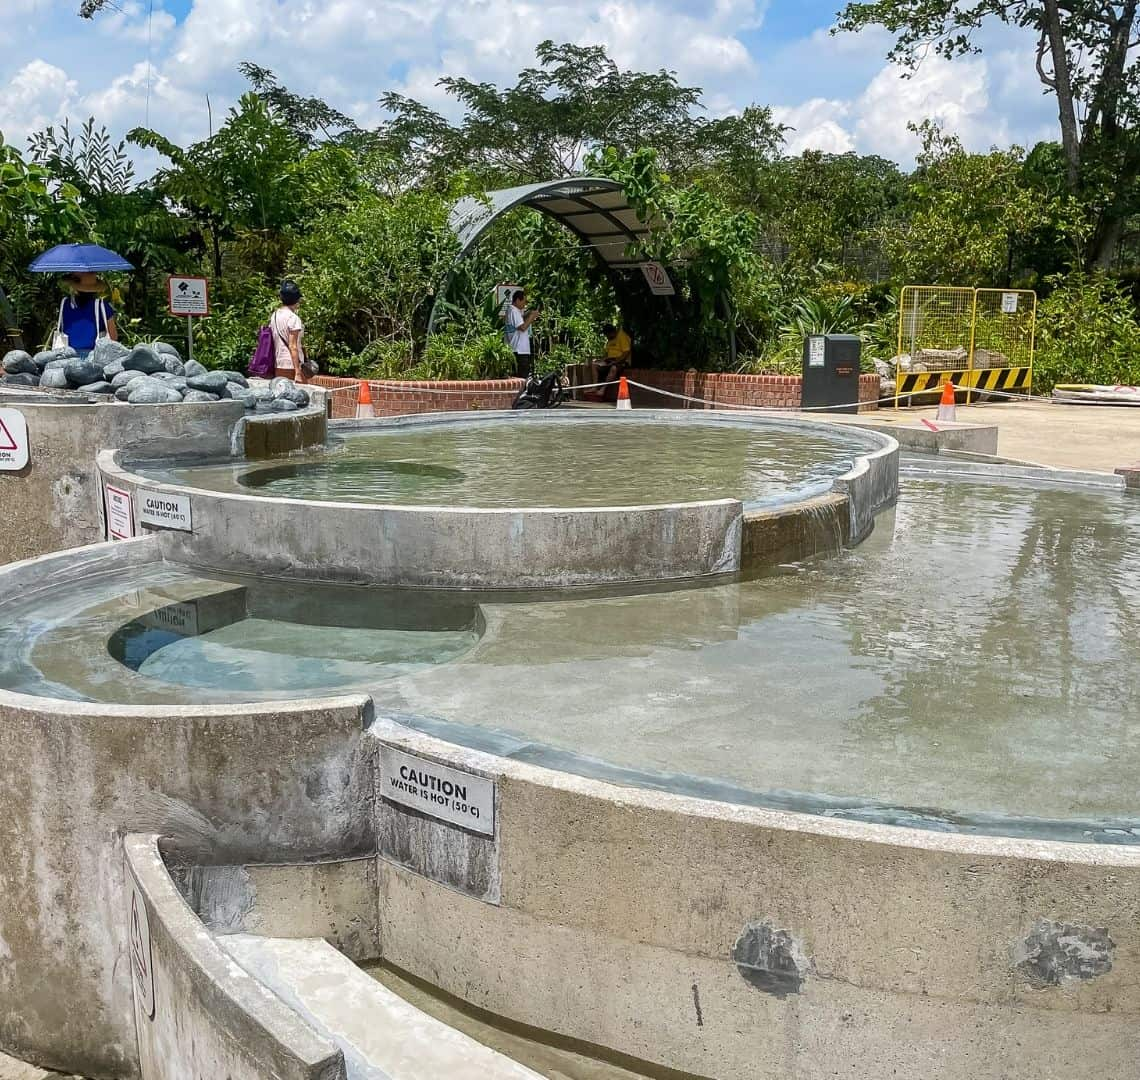 The image shows the cascading pools in Sembawang, They are circular and made of concrete. The water is clear. Behind the pools is a trellis that provides shade over some seats that are in front of a red brick wall and some tropical green plants. In the mid ground there are four people walking and sitting.